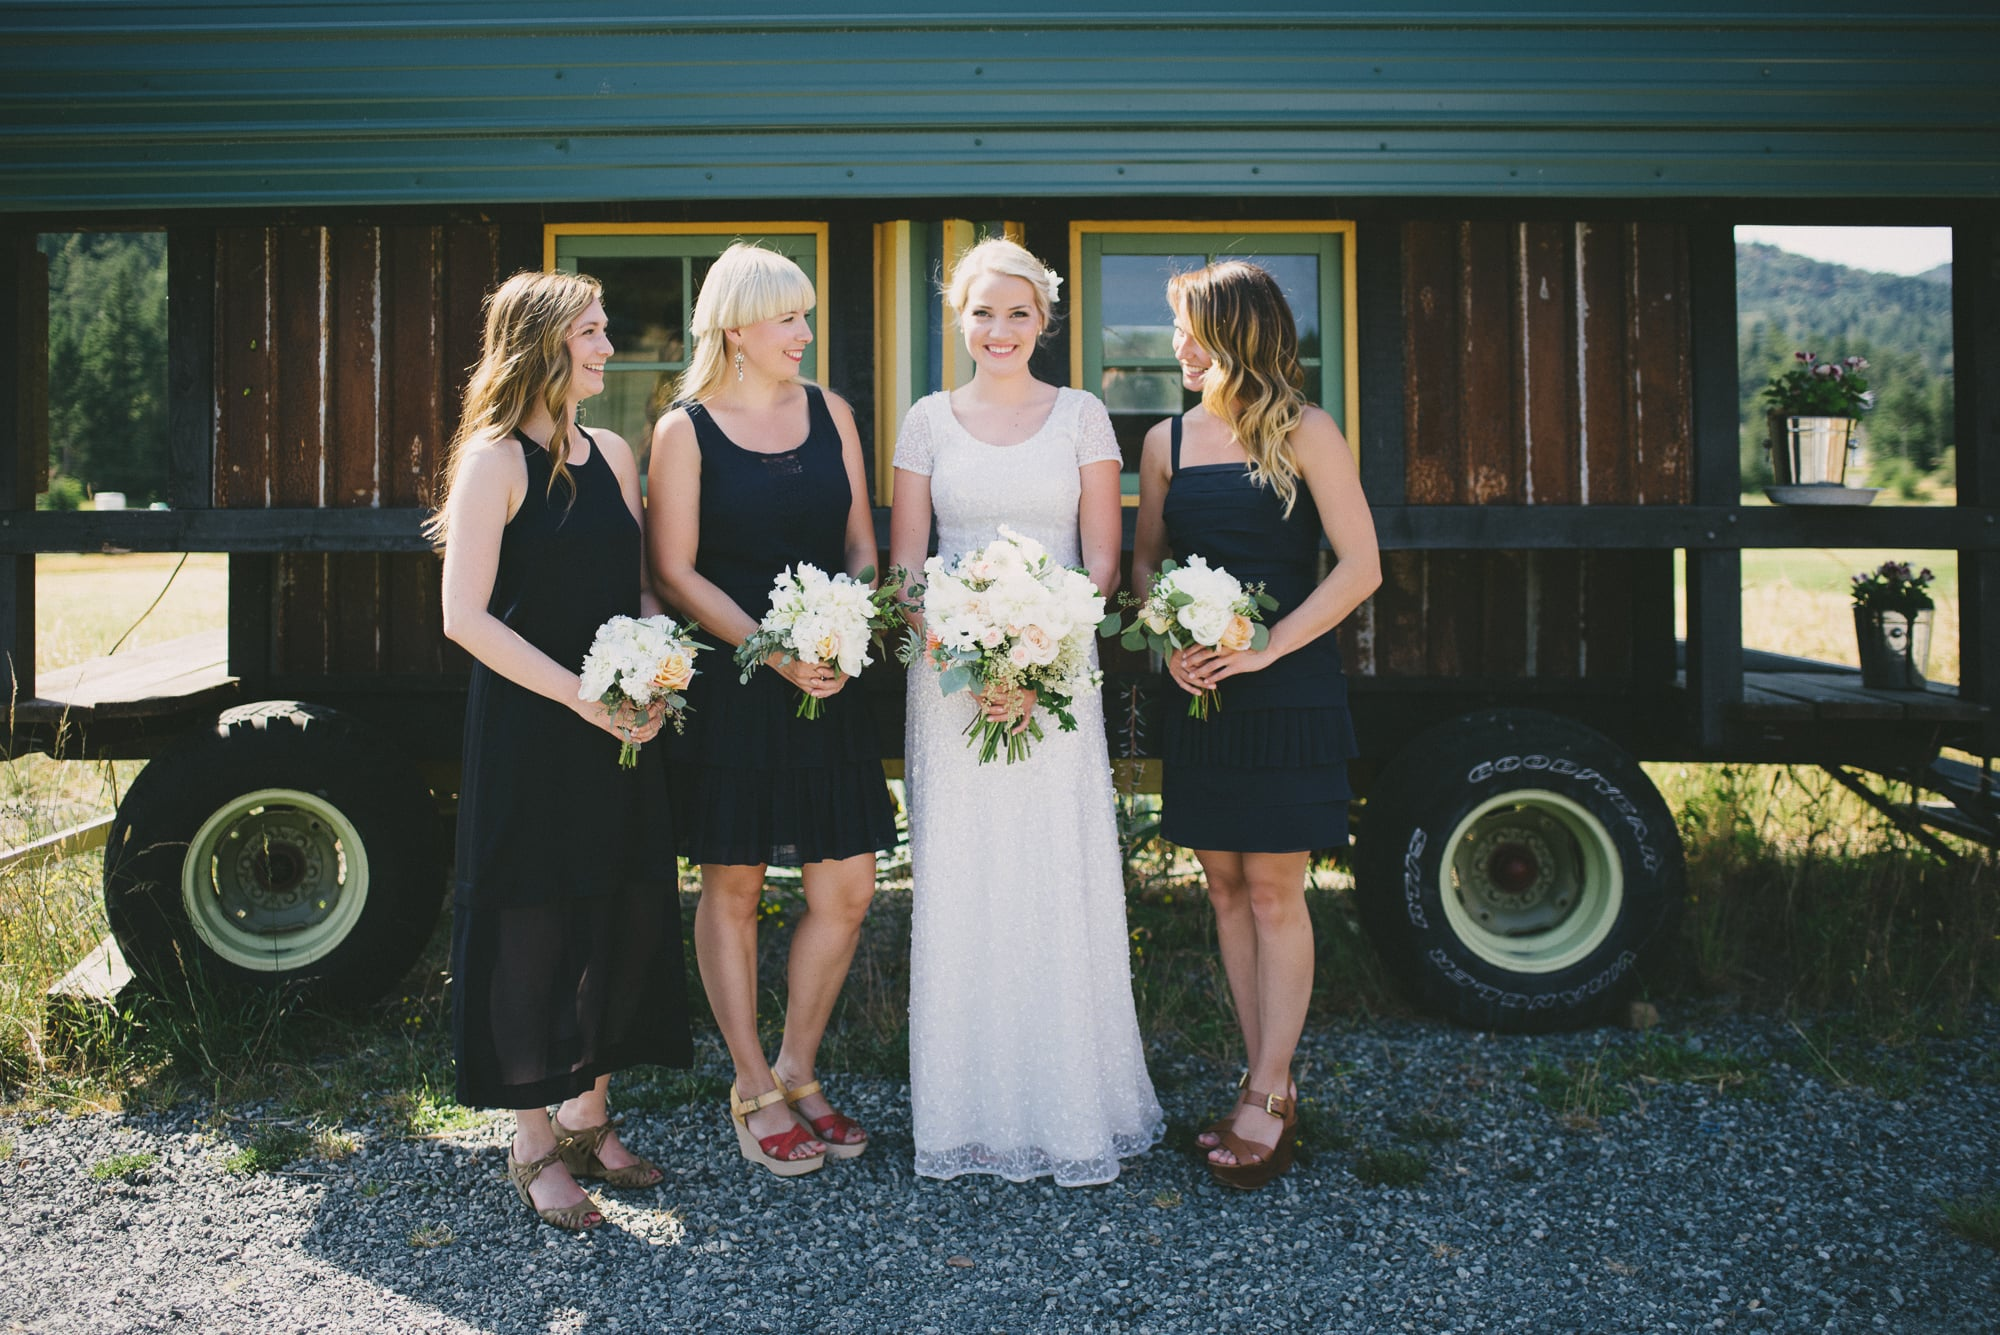 64-birdseye-cove-farm-wedding-sara-rogers-photography.jpg